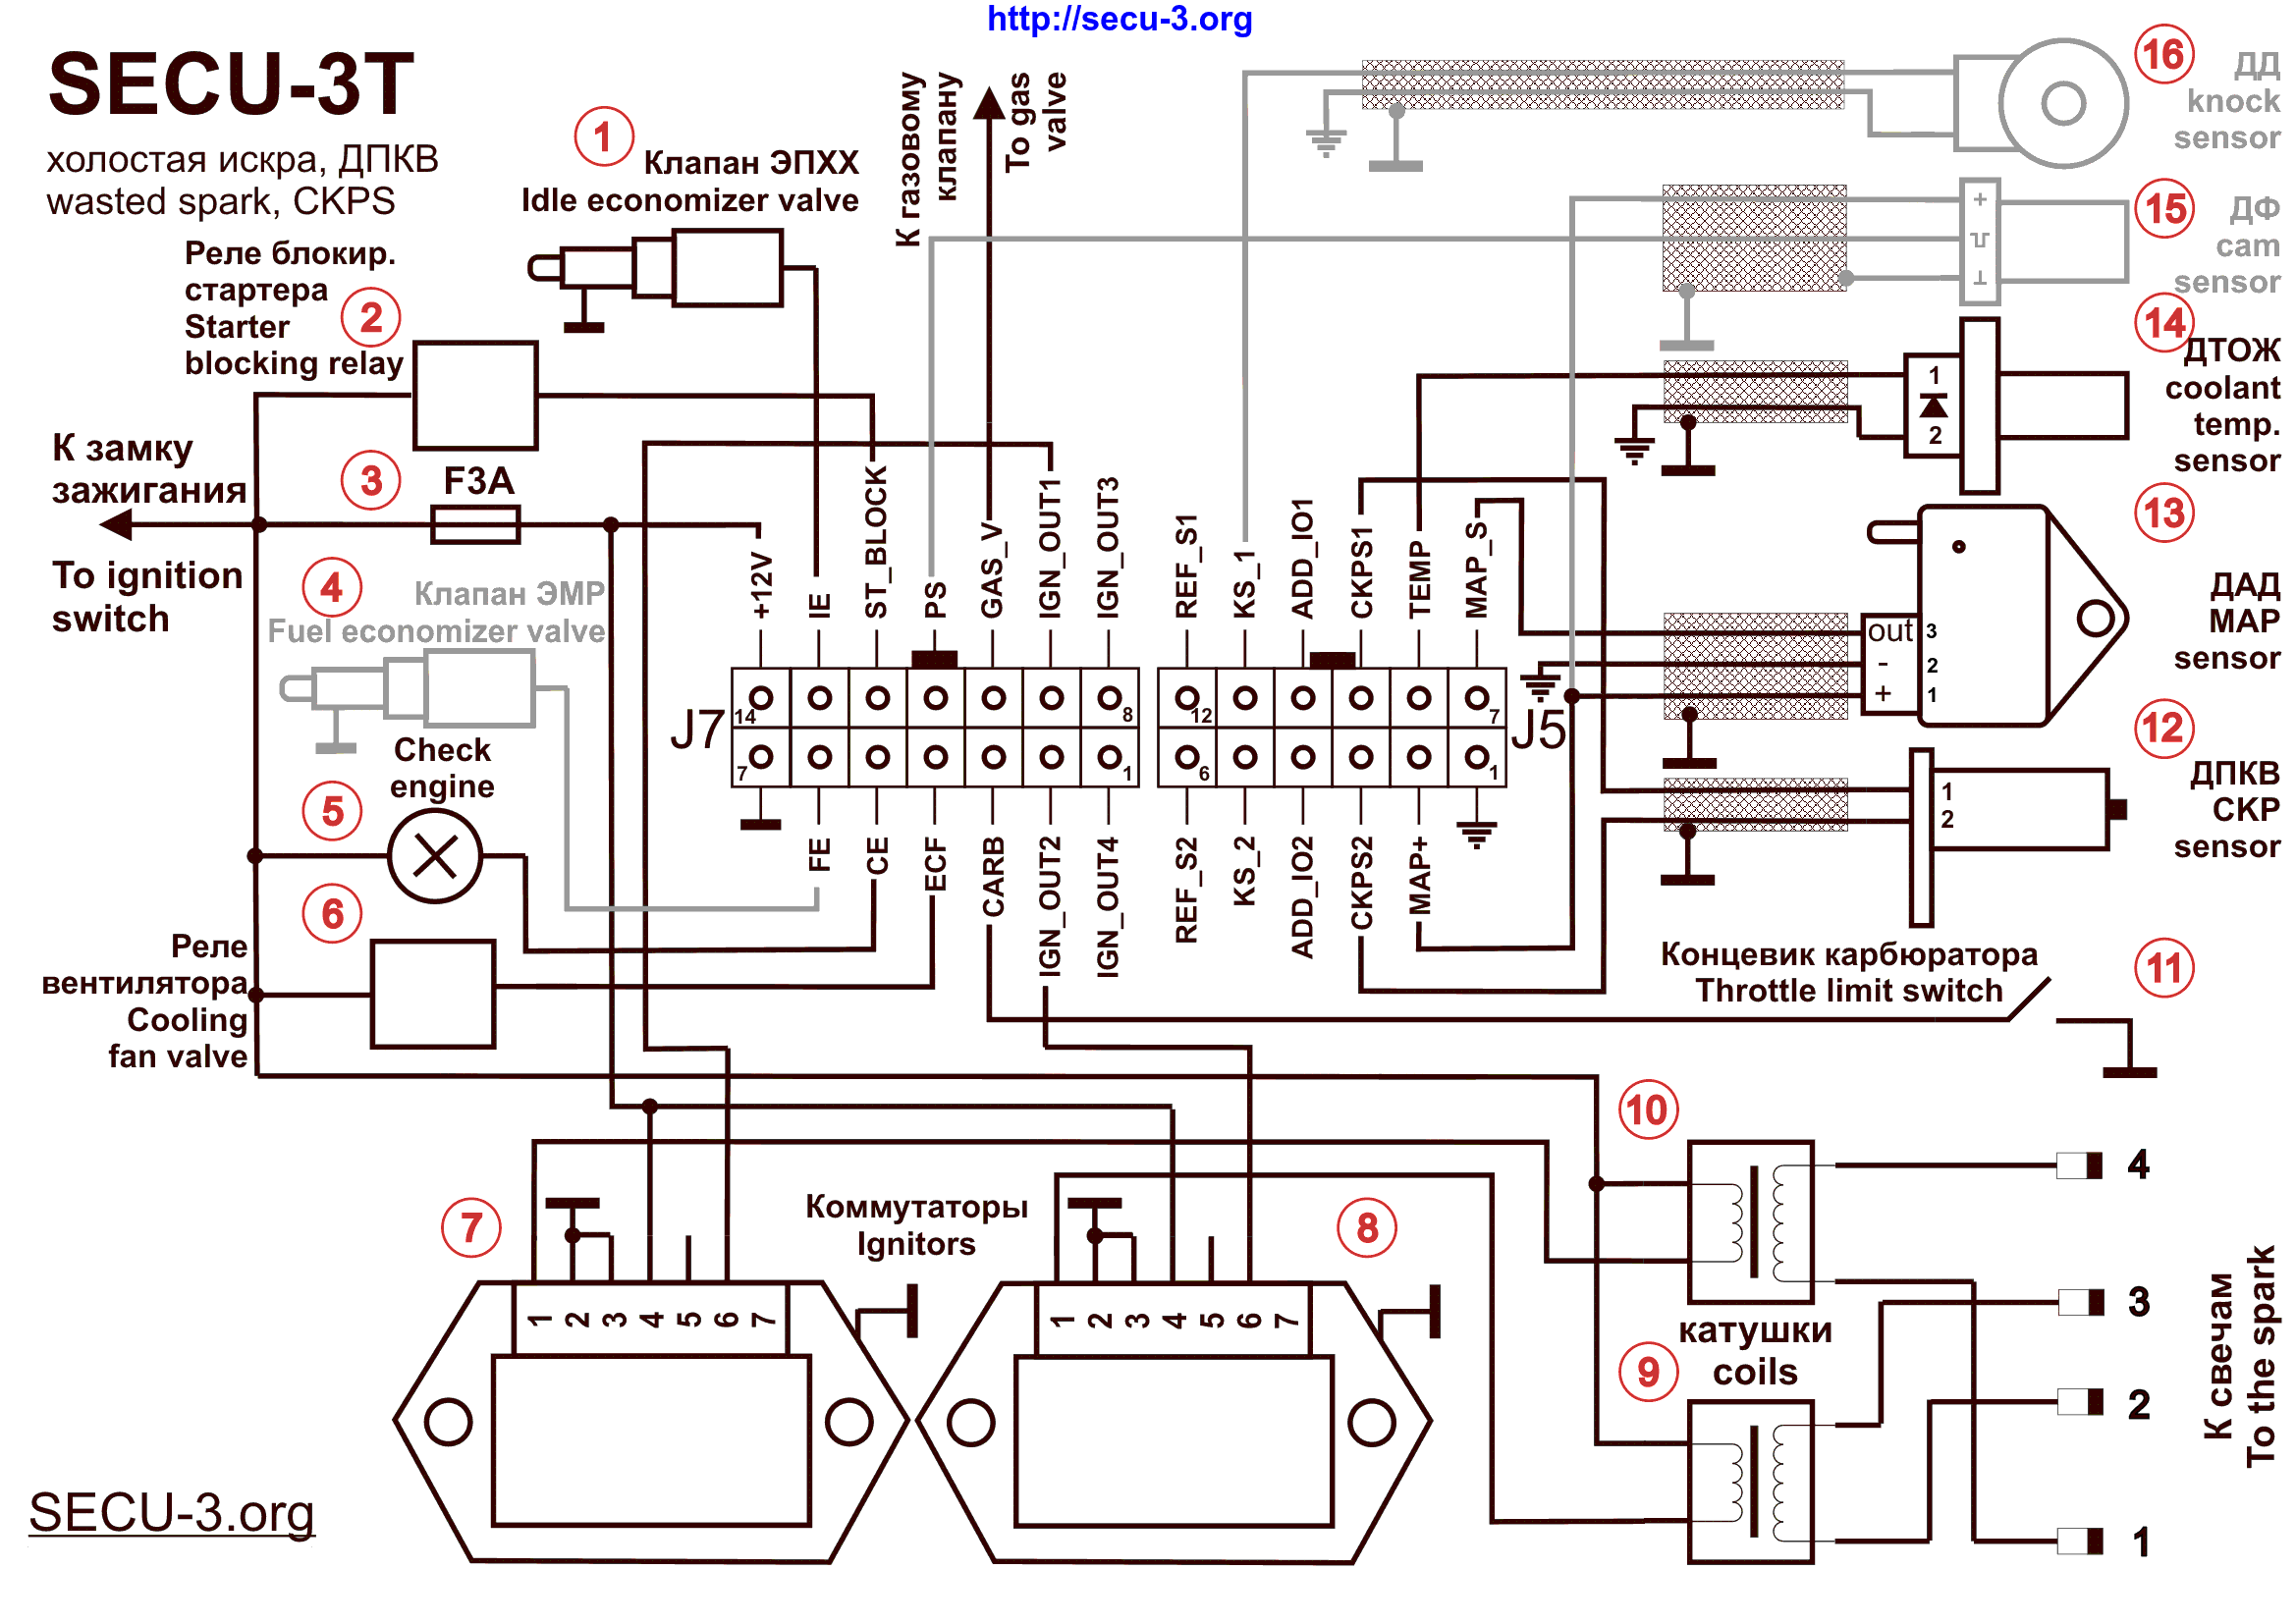 SECU 3T_WS_CKPS_14+12 wiring diagrams for secu 3 units (examples) ���� secu 3 wasted spark wiring diagram at aneh.co